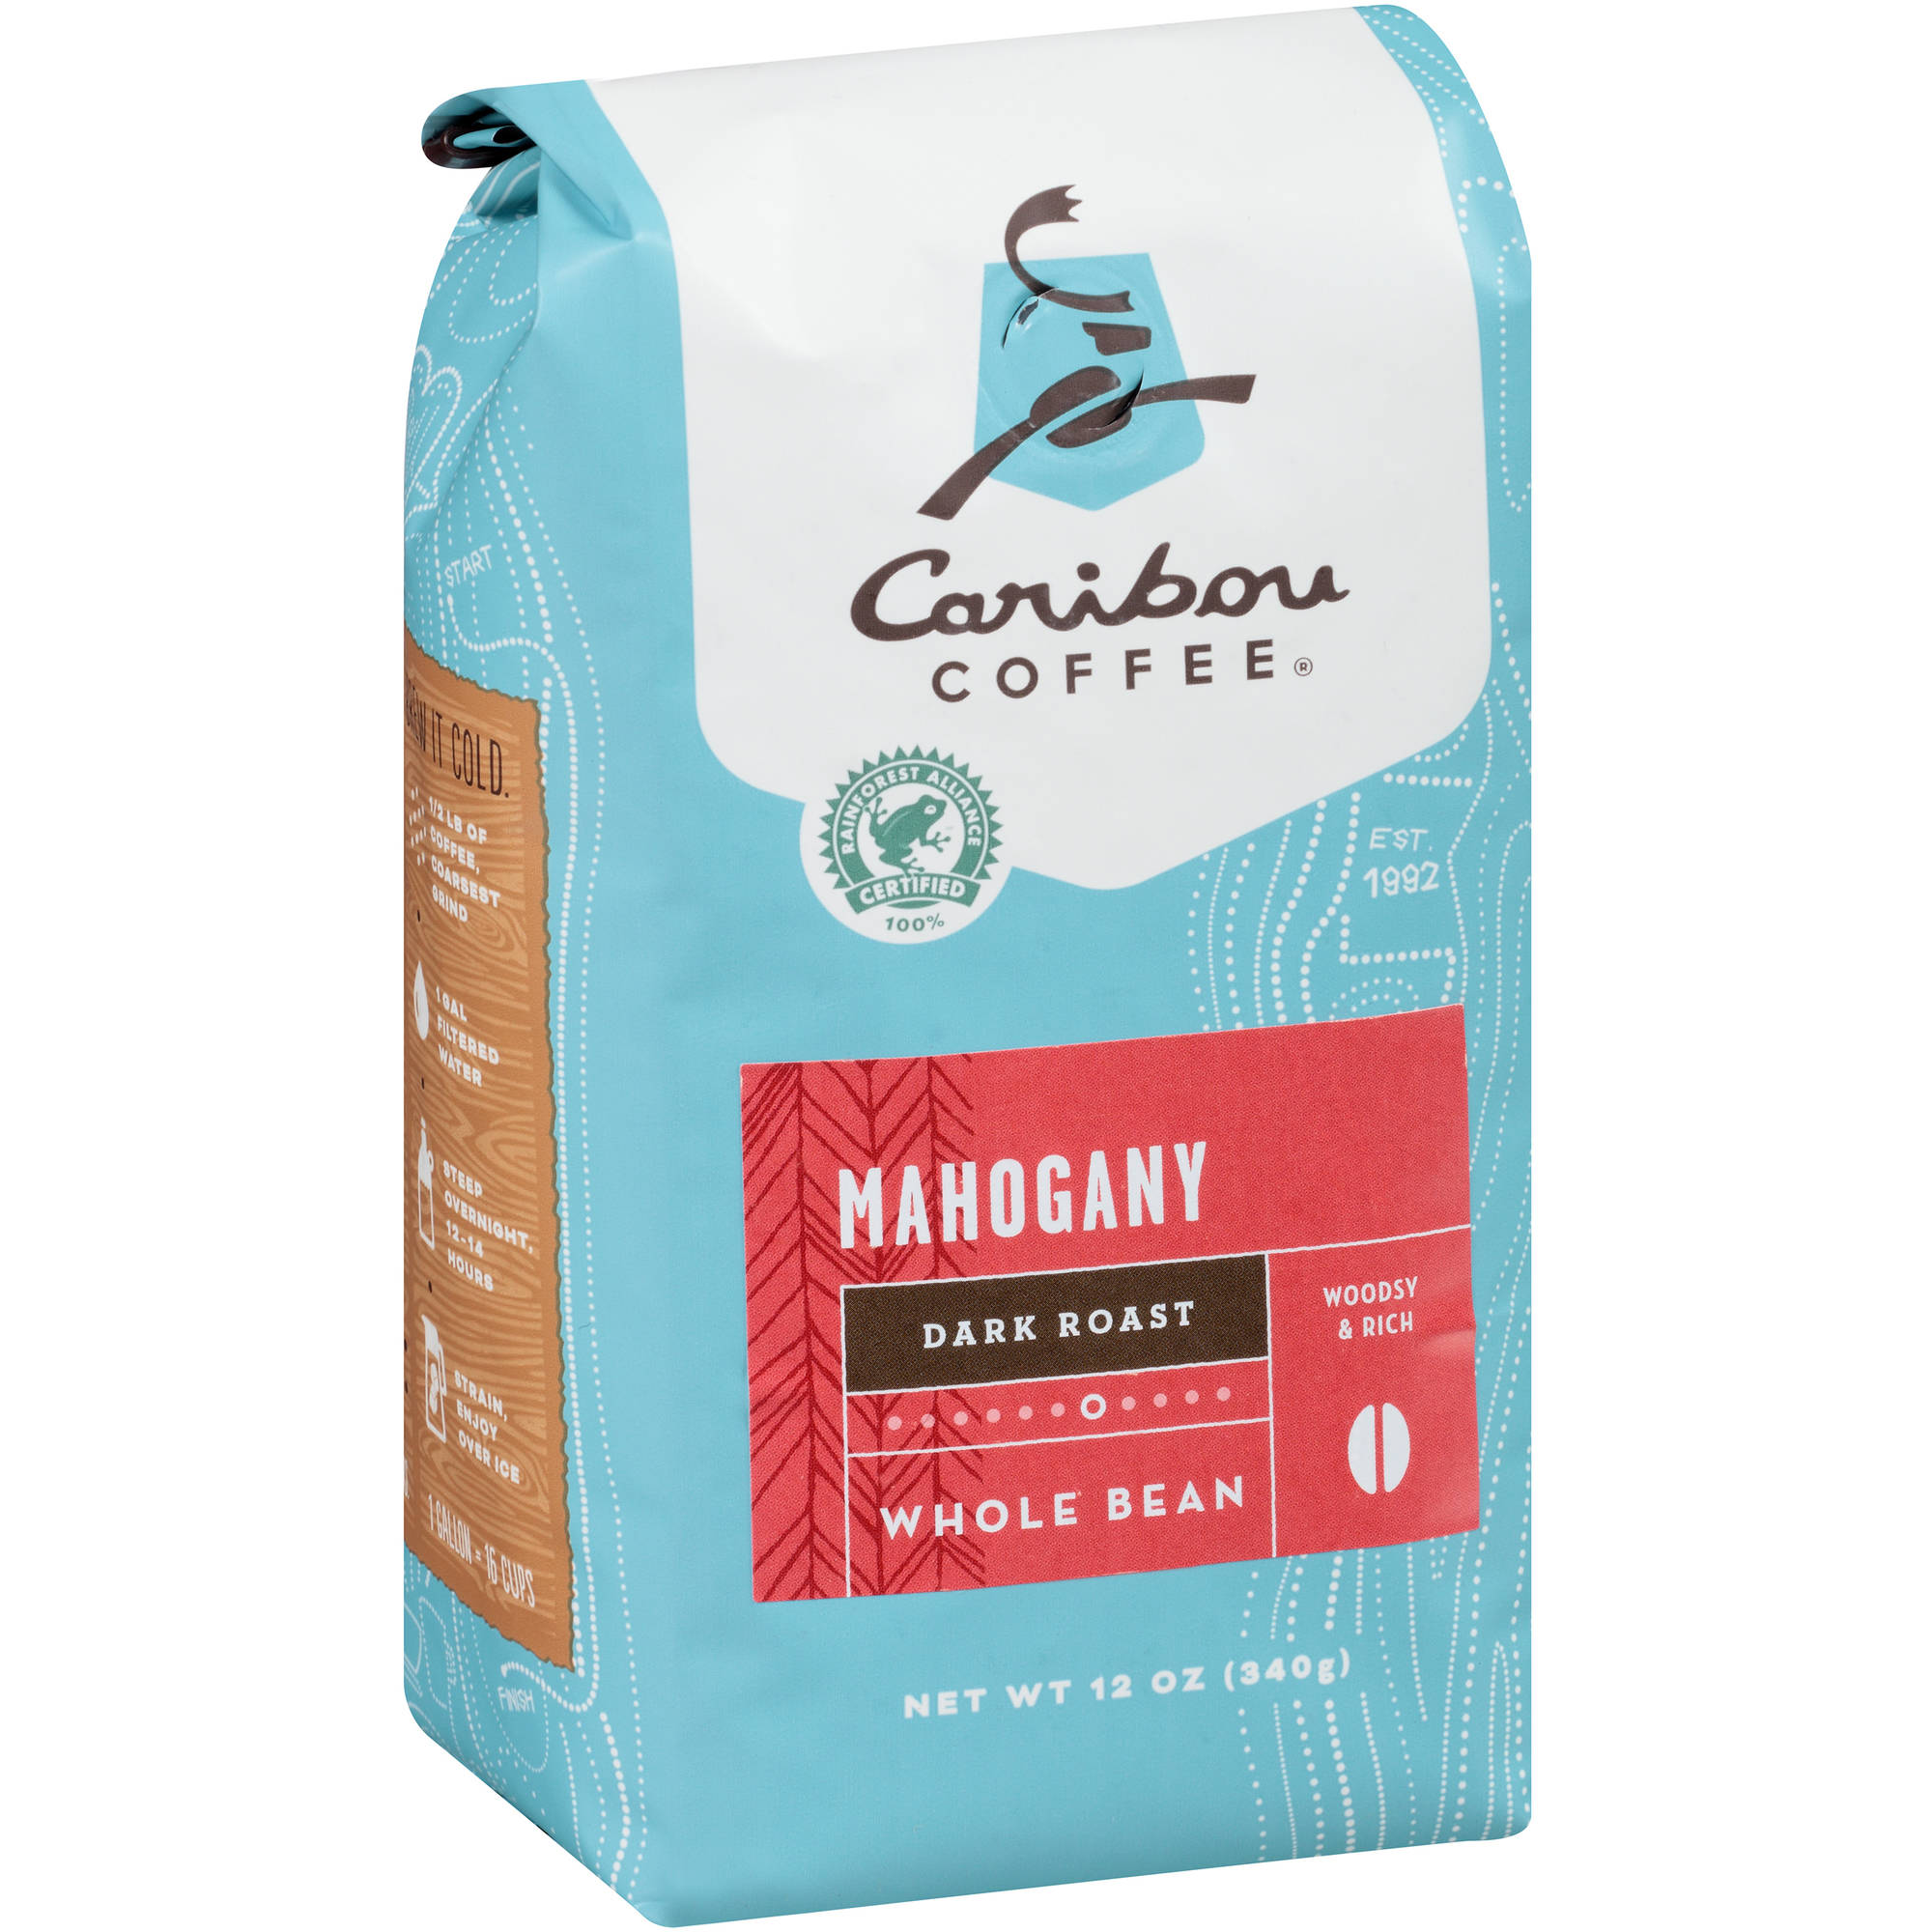 Caribou Coffee Mahogany Dark Roast Whole Bean Coffee, 12 oz